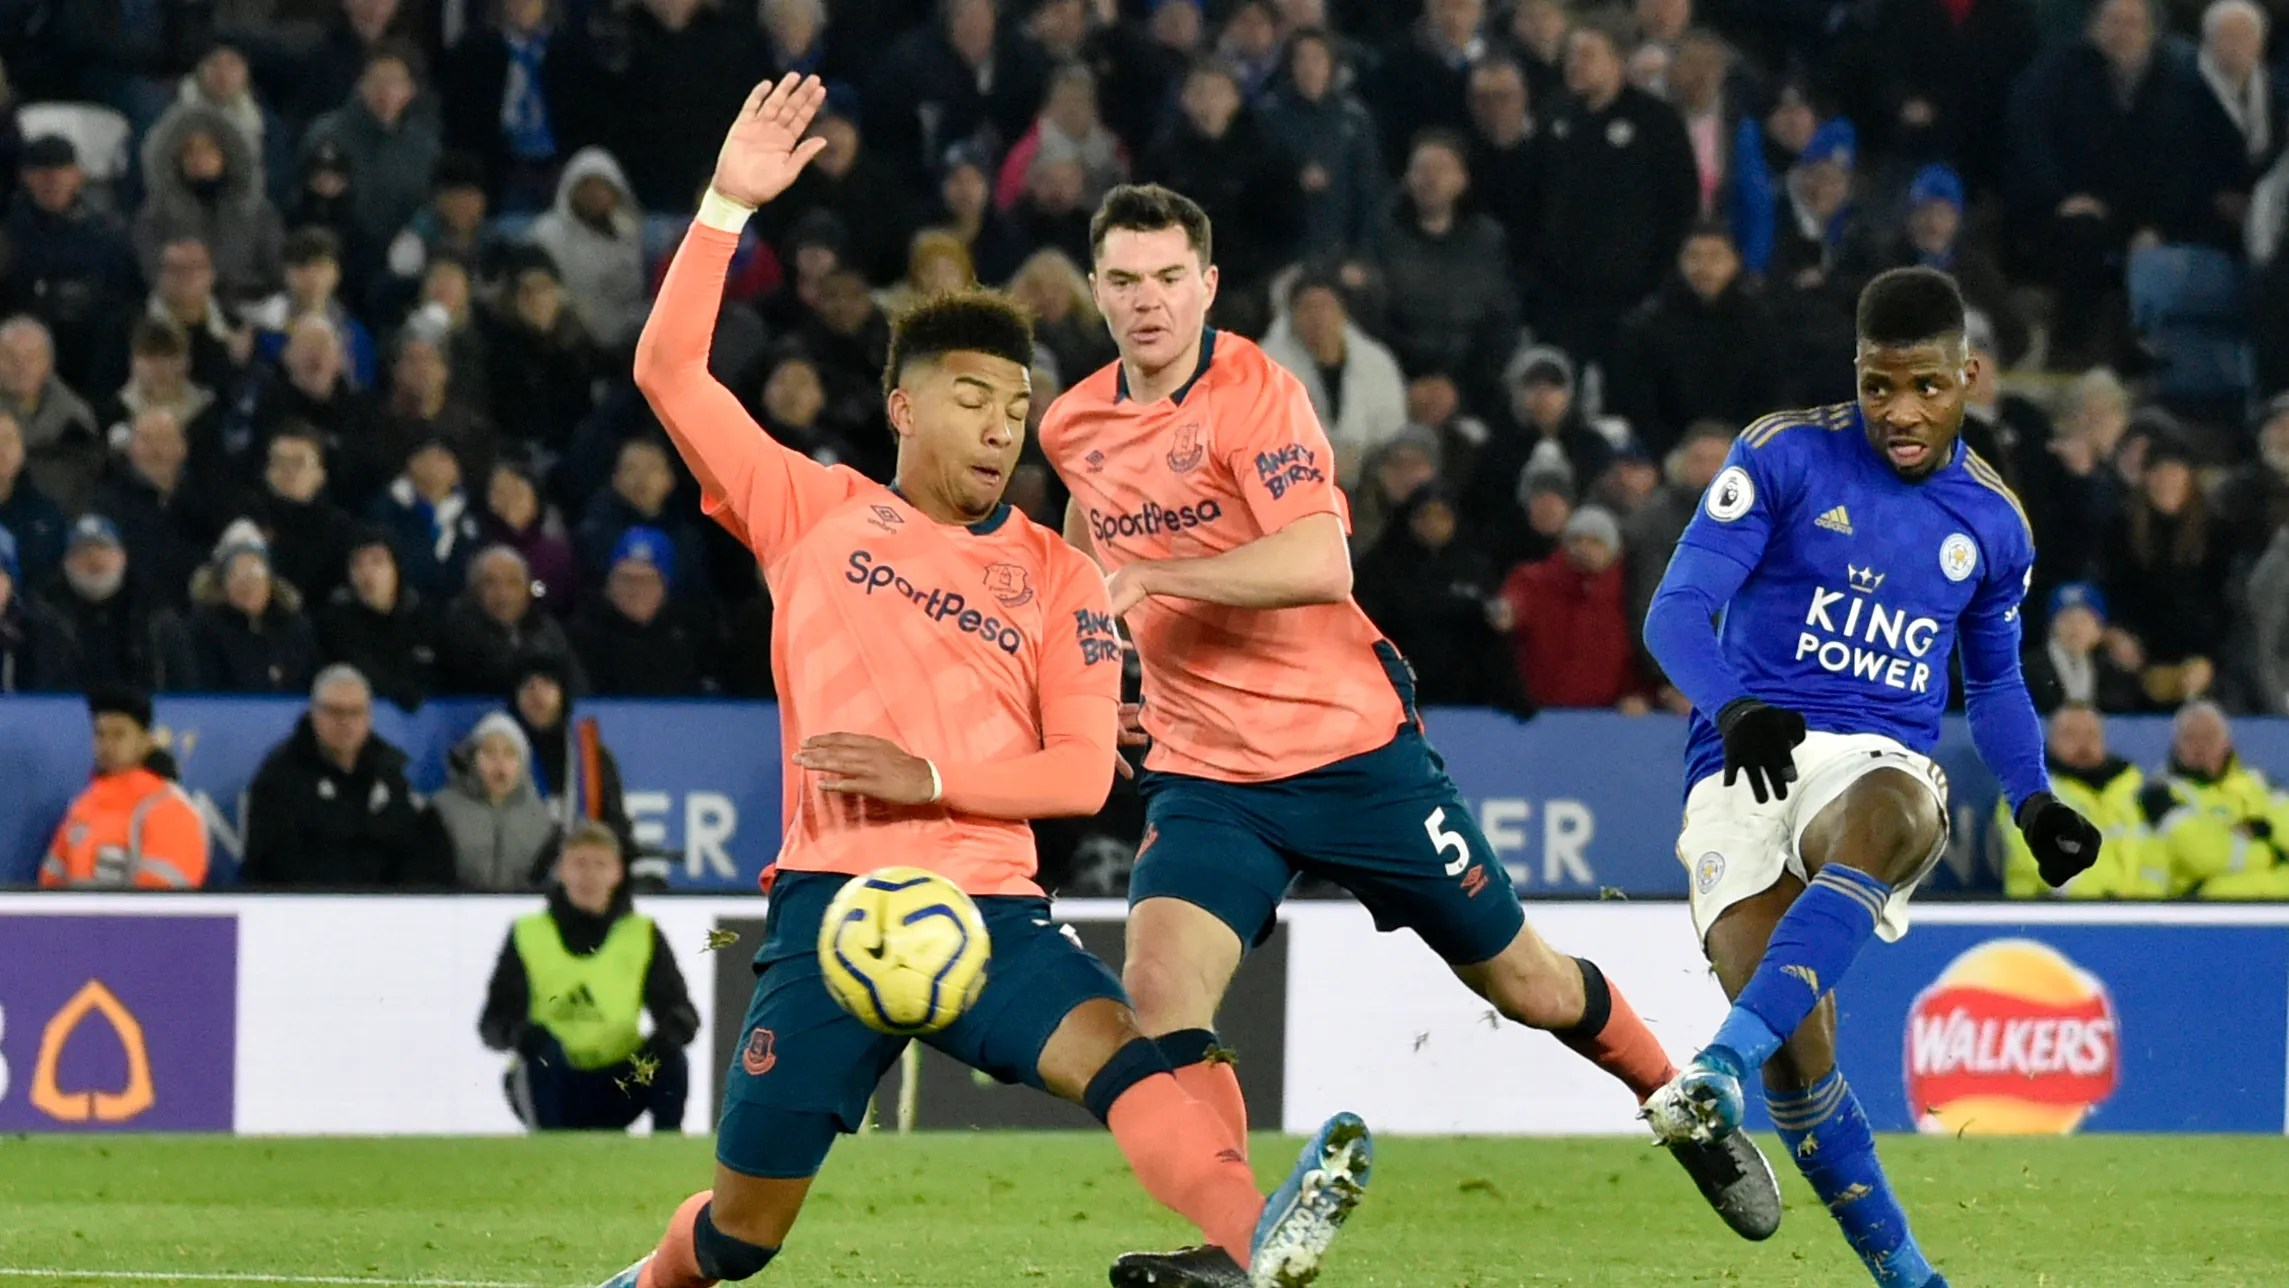 More Misery For Silva As Leicester Scores Late Vs Everton